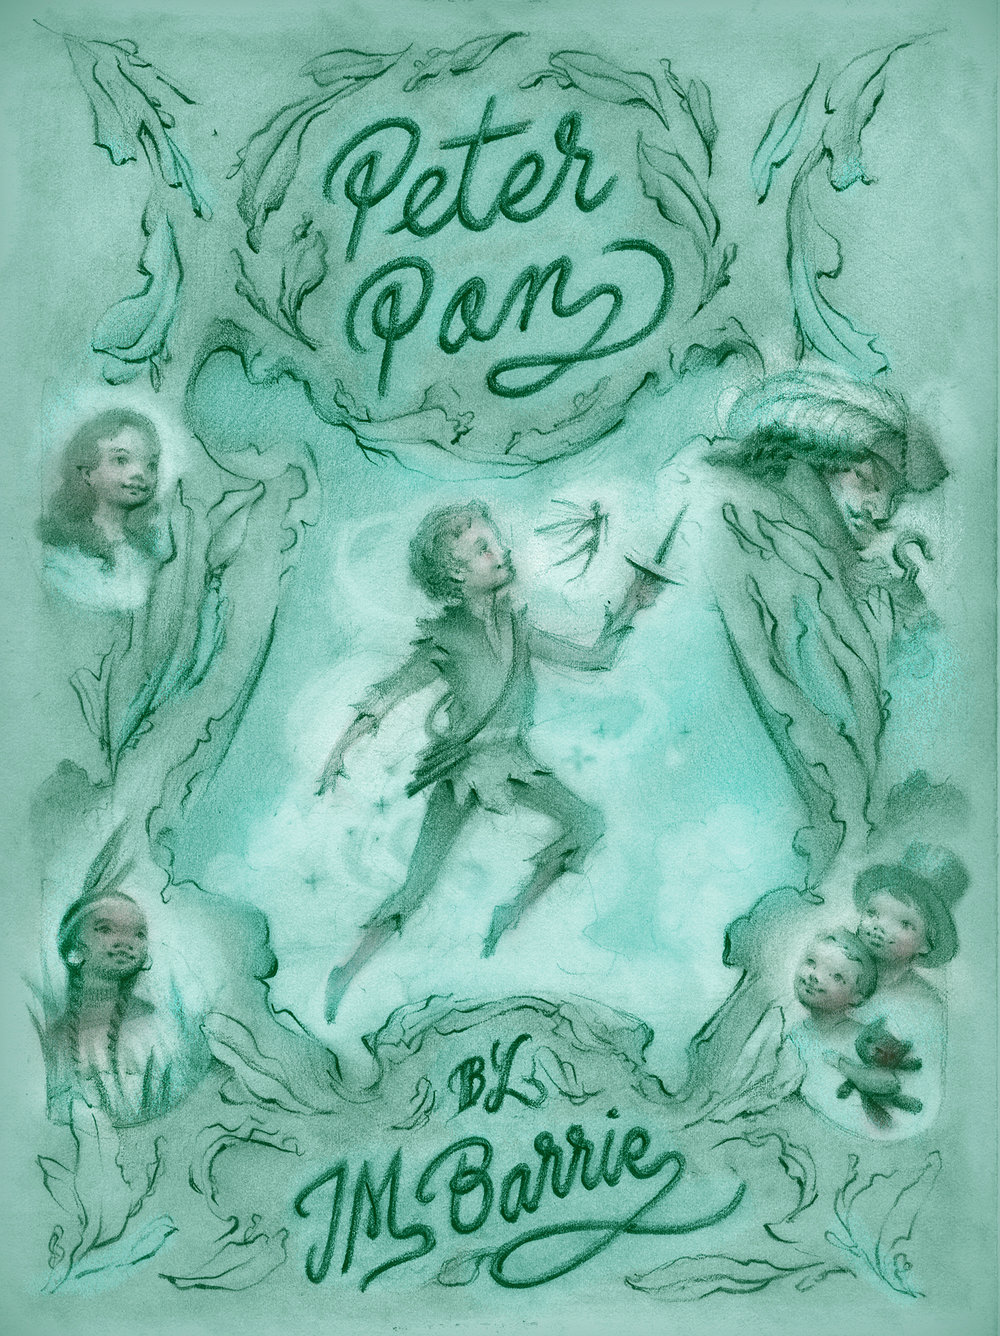 Peter Pan Book Cover Illustration